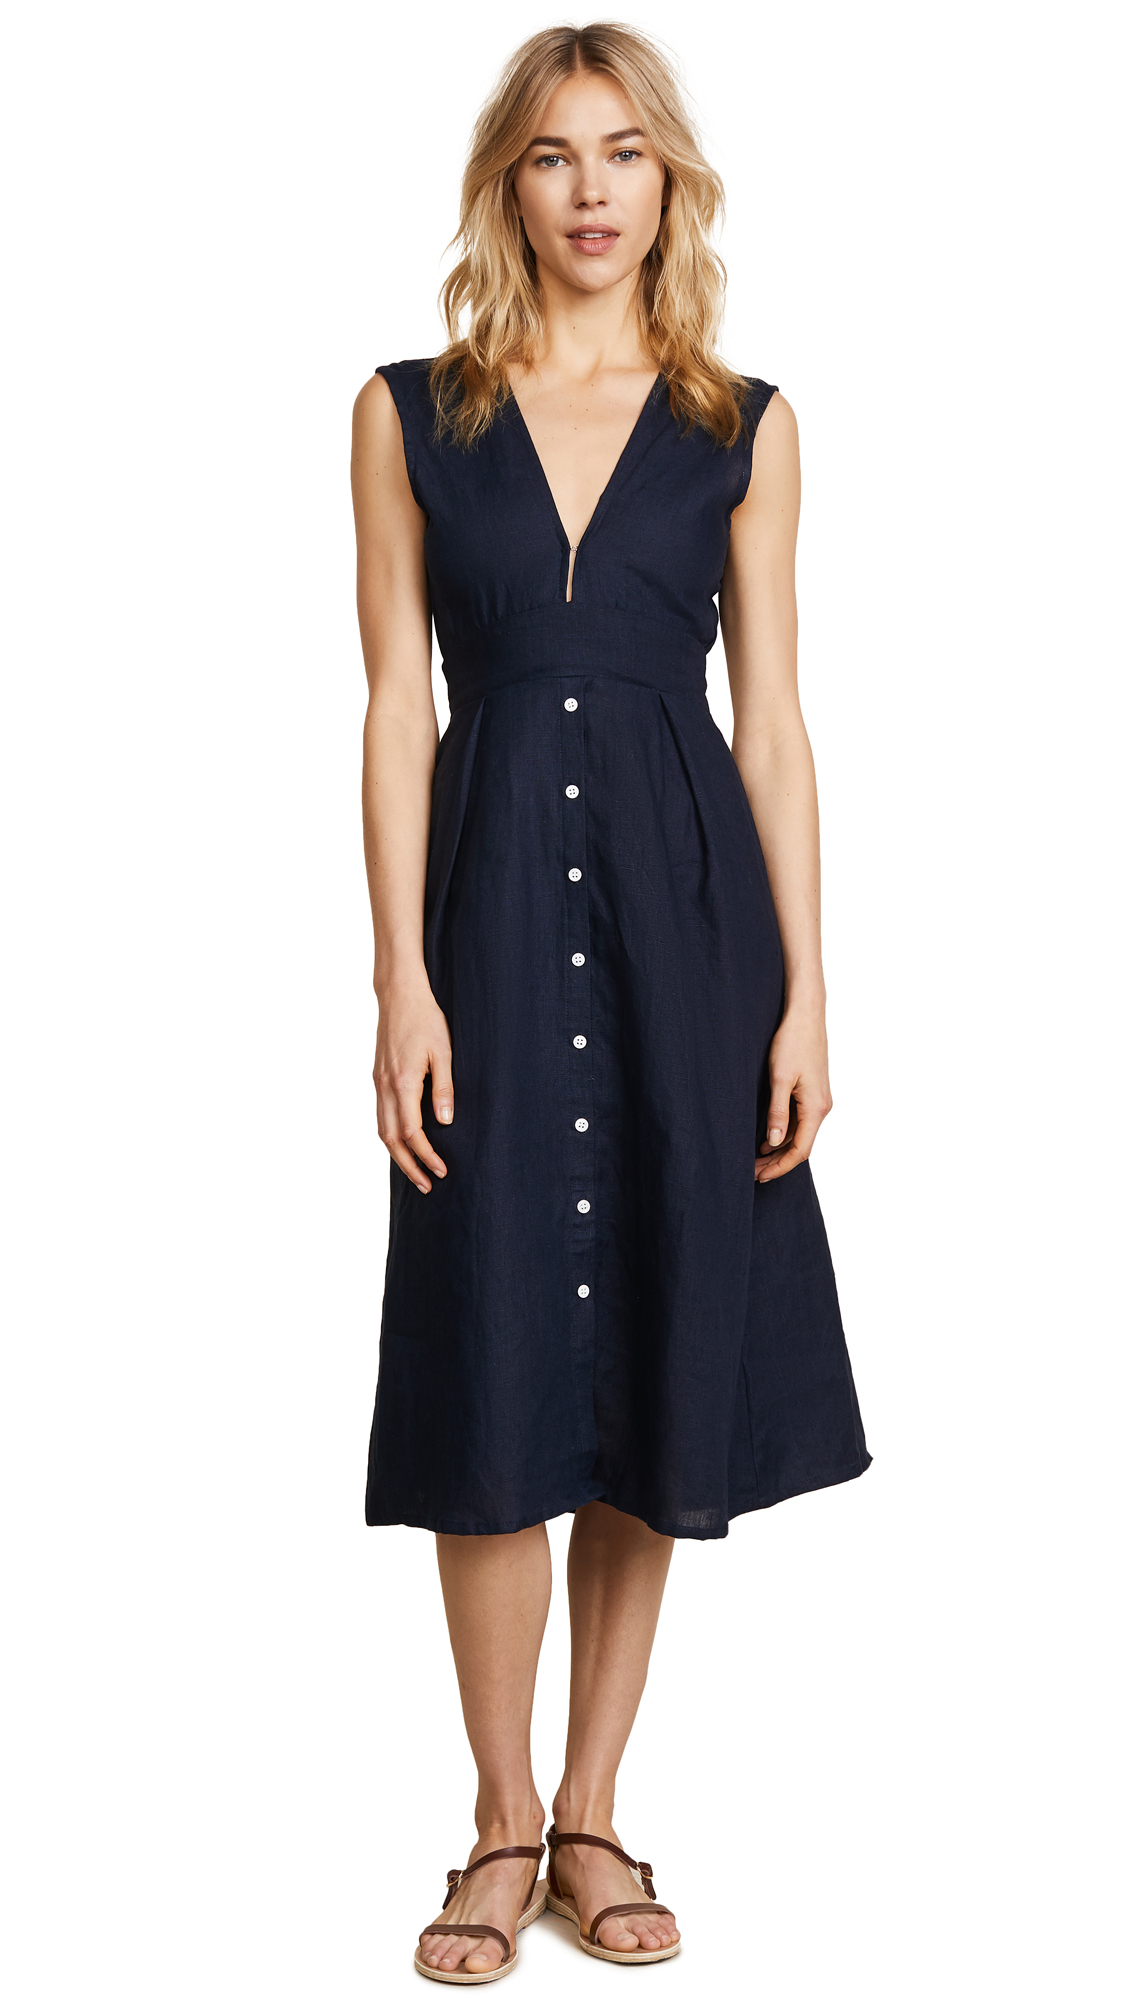 FAITHFULL THE BRAND Le Roch Midi Dress - Navy